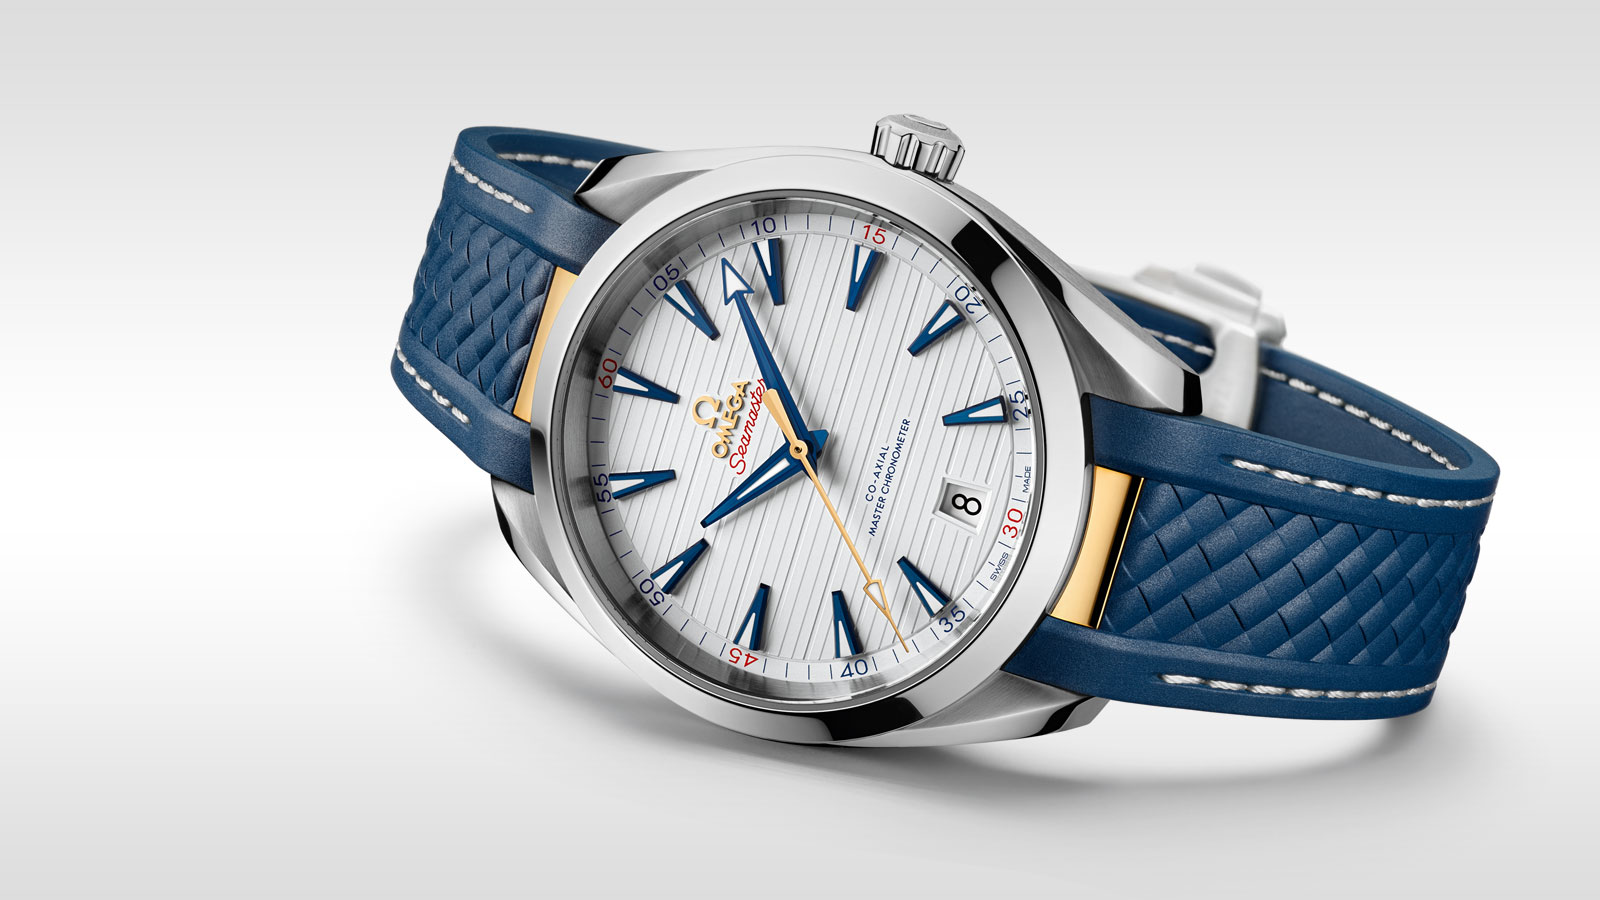 Seamaster アクアテラ 150M Aqua Terra 150M Omega Co‑Axial Master Chronometer 41 mm - 220.12.41.21.02.004 - ビュー 1